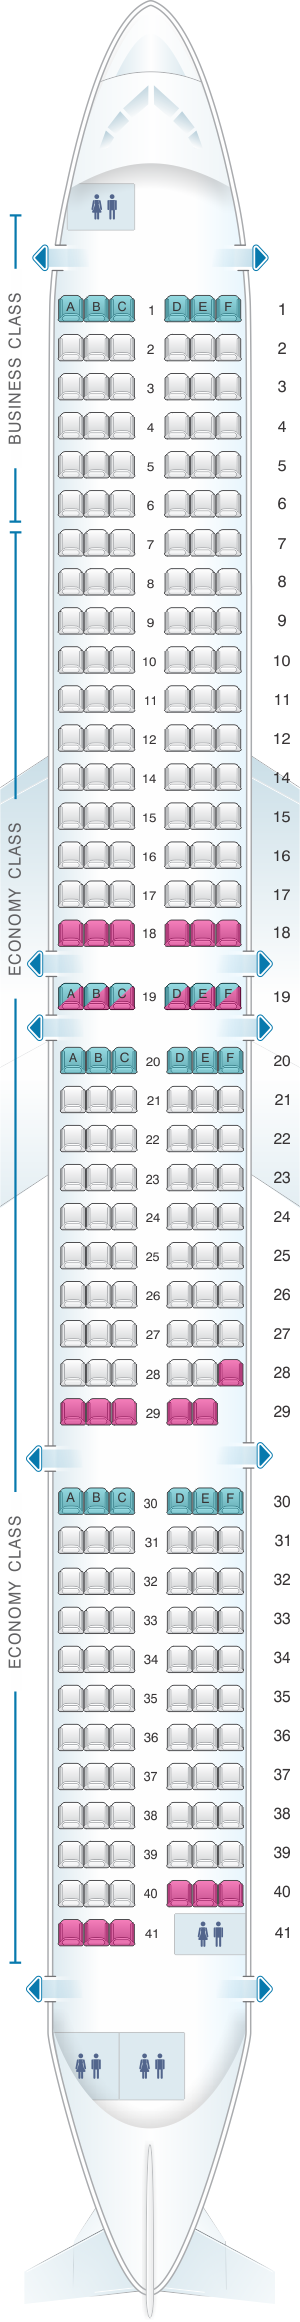 Seat map for Cebu Pacific Air Airbus A321 neo